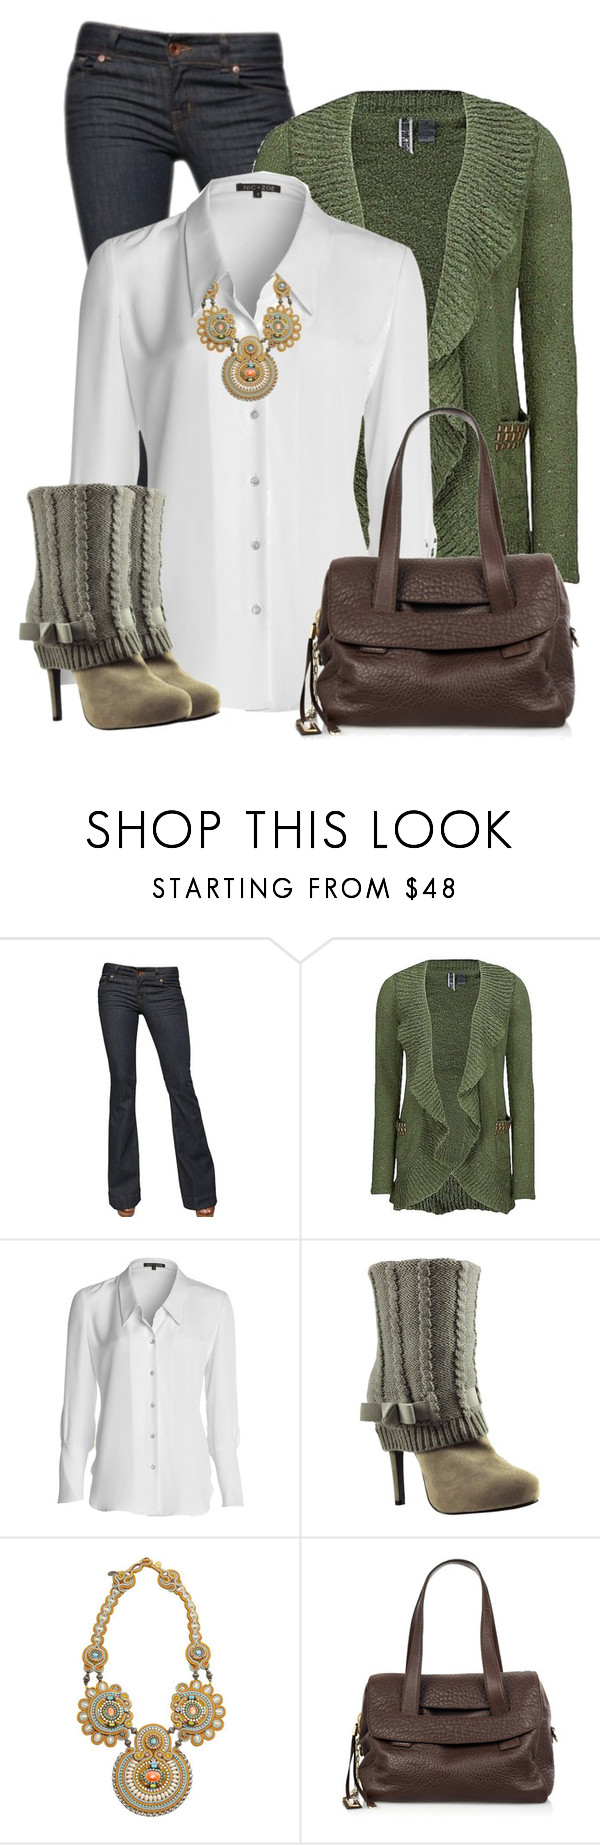 """""""Sweater Boots"""" by daiscat ❤ liked on Polyvore featuring J Brand, BKE, NIC+ZOE, Bakers, Dori Csengeri and Jimmy Choo"""